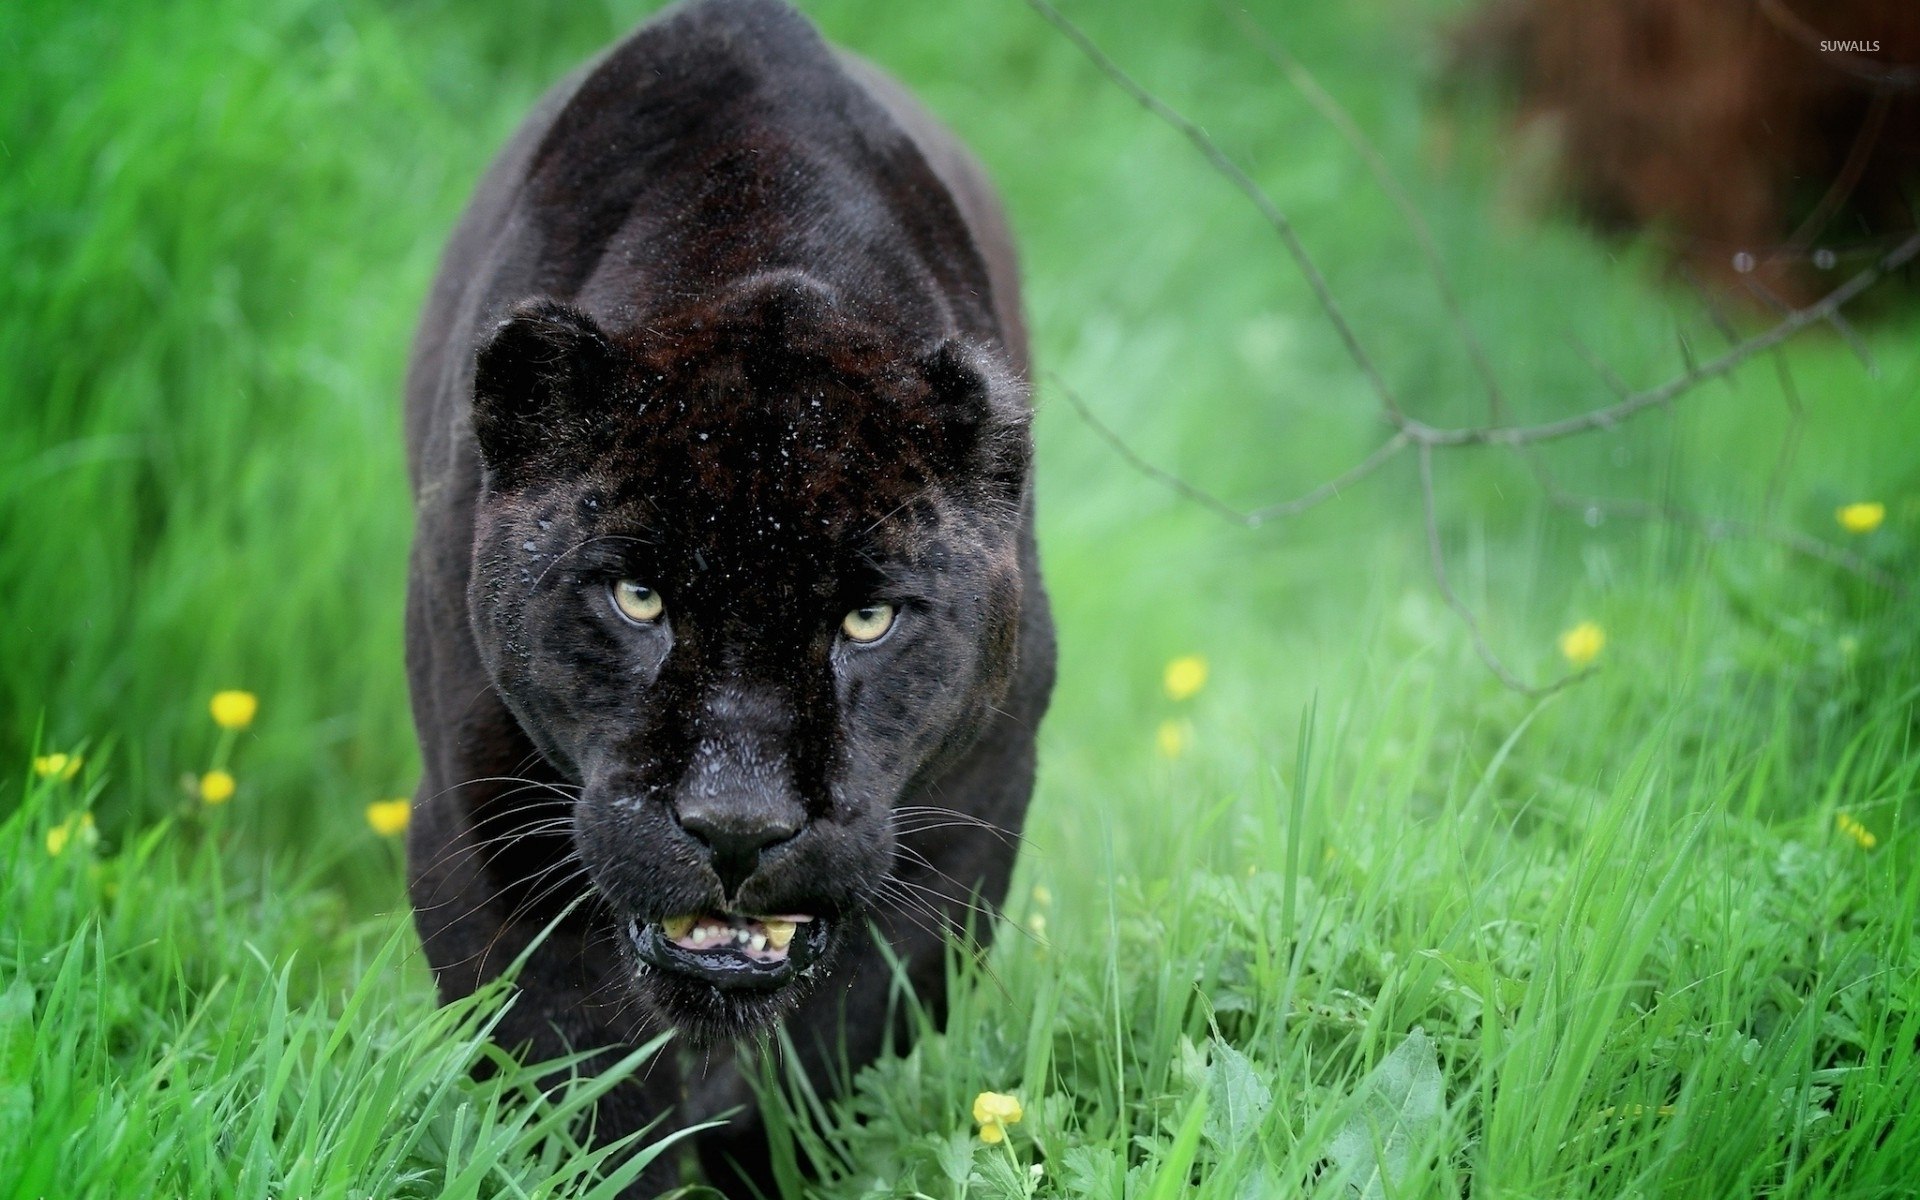 Black Panther Sneaking In The Green Grass Wallpaper Animal